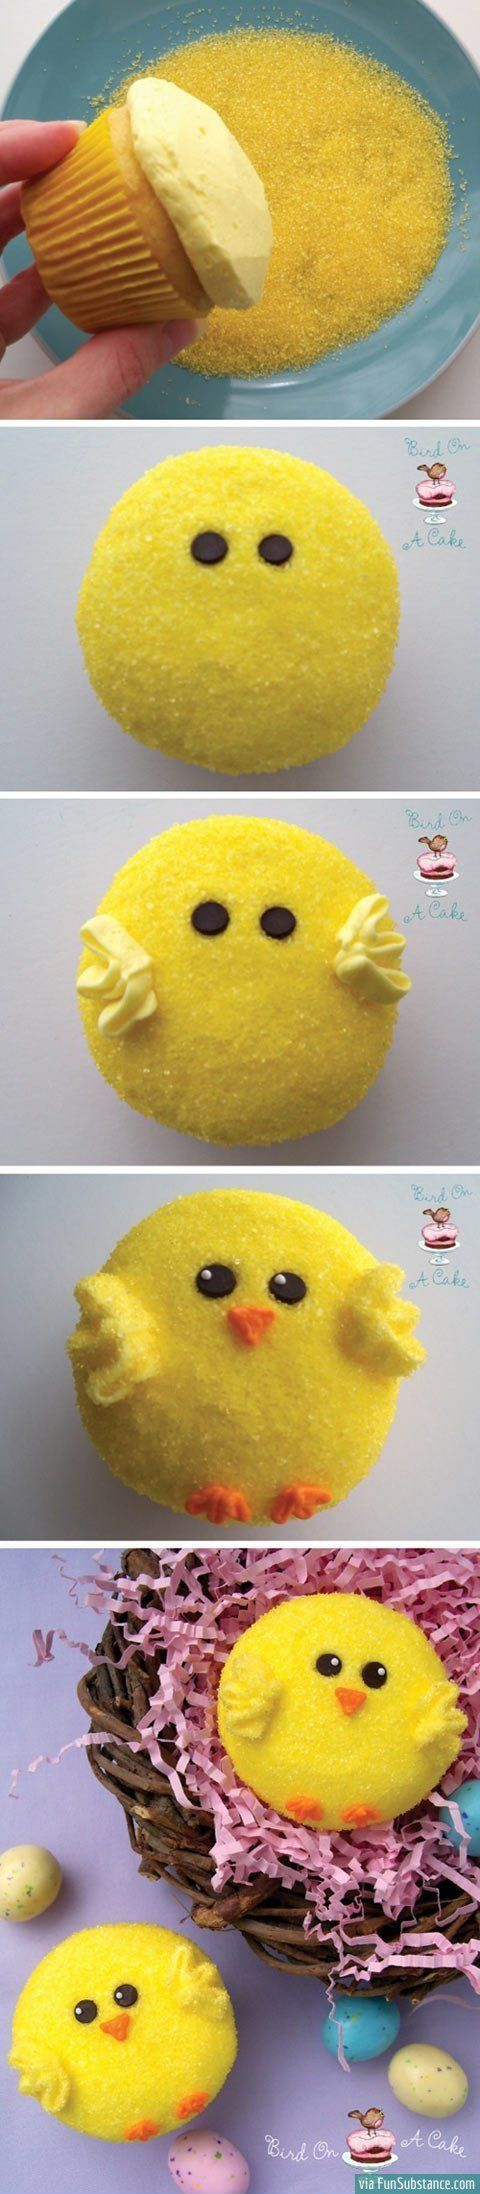 Easter Cupcake - Children | Holiday | Recipes | Kids | Parents | harrypierre.com